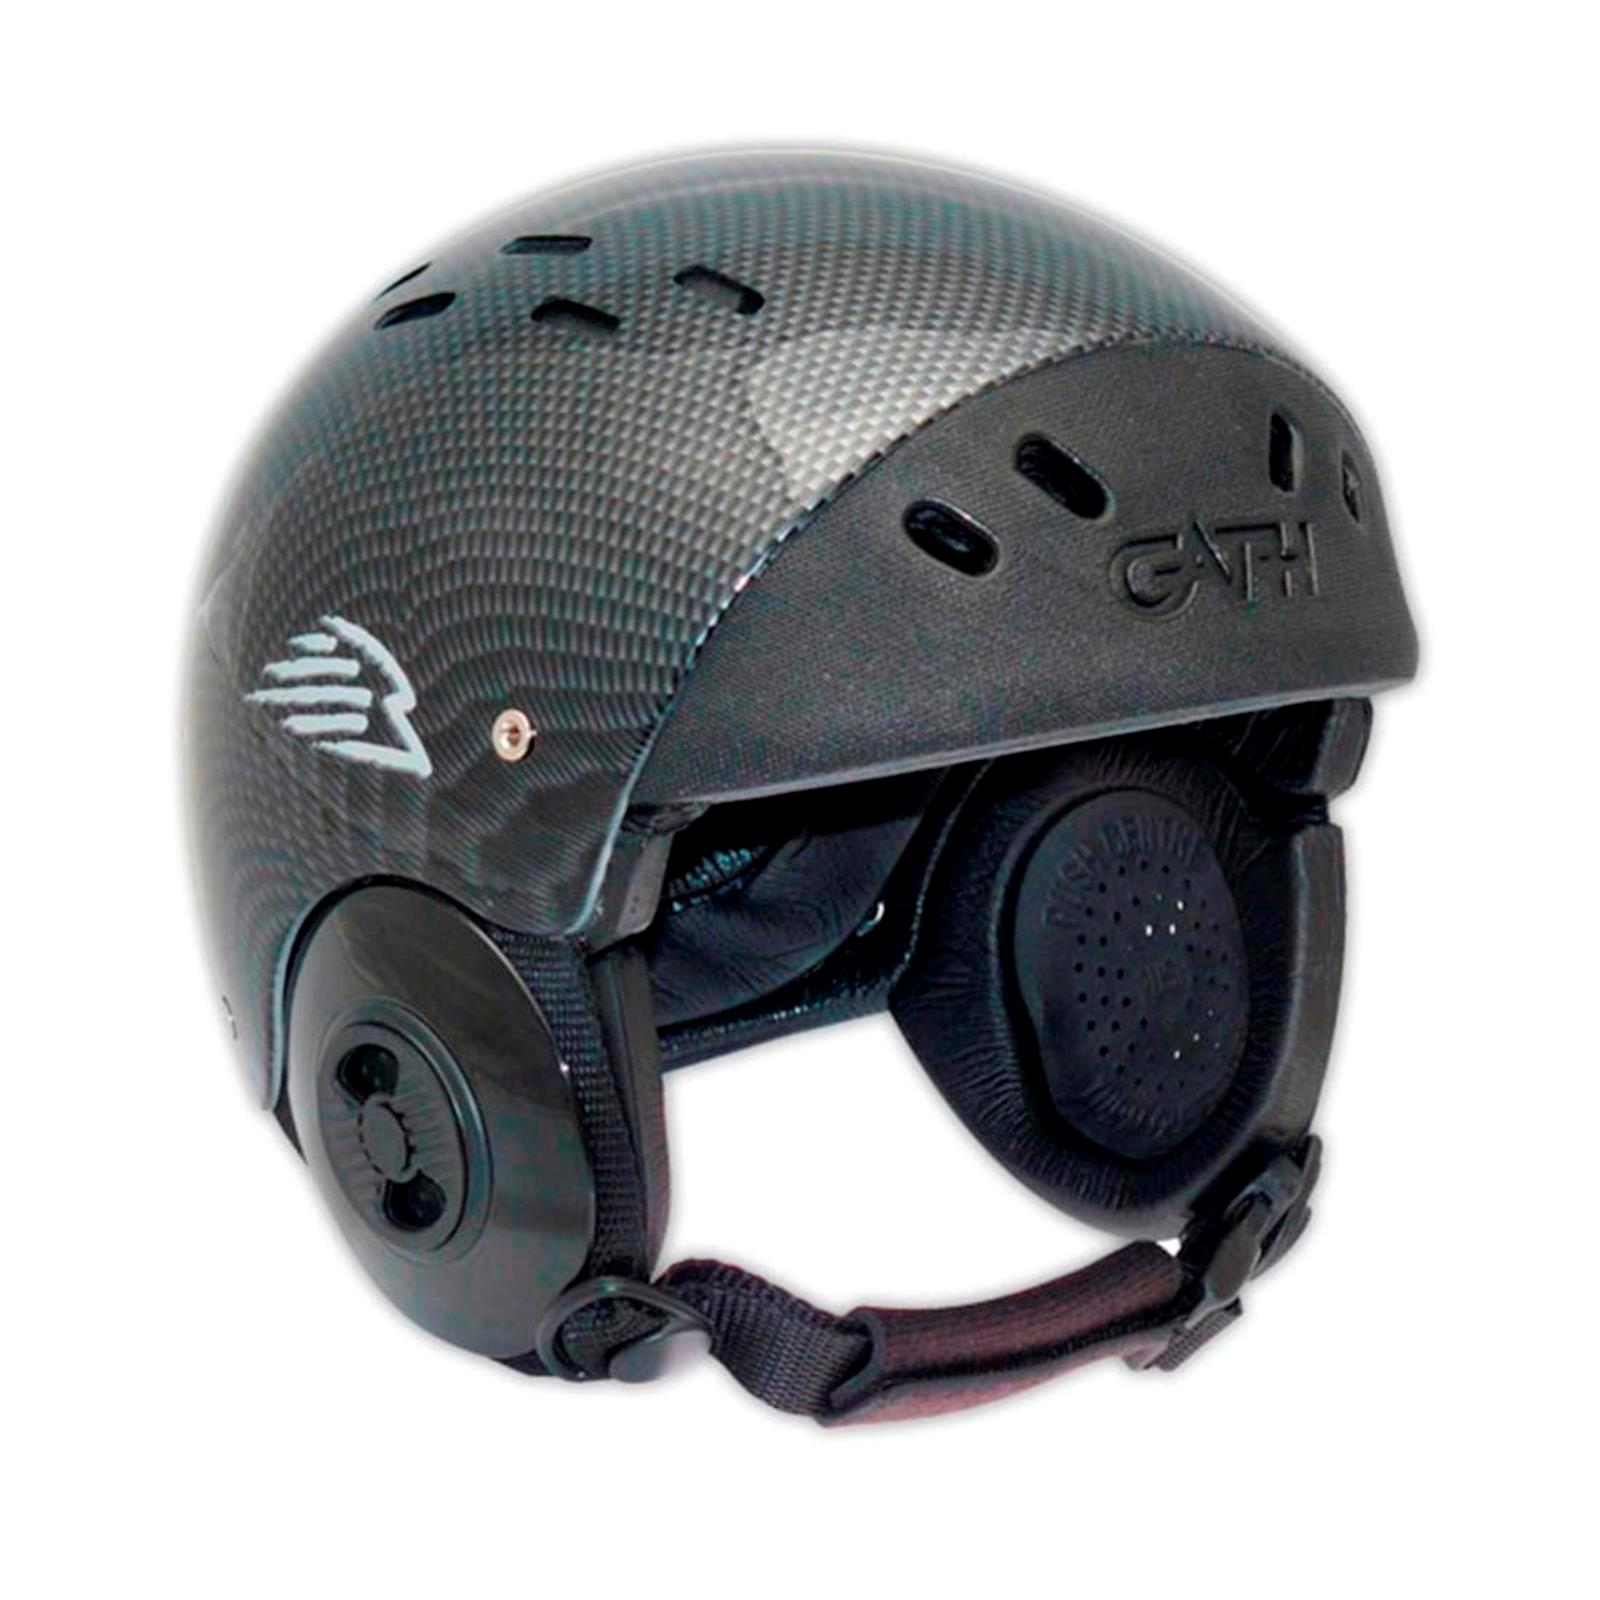 GATH Wassersport Helm SFC Convertible L Carbon